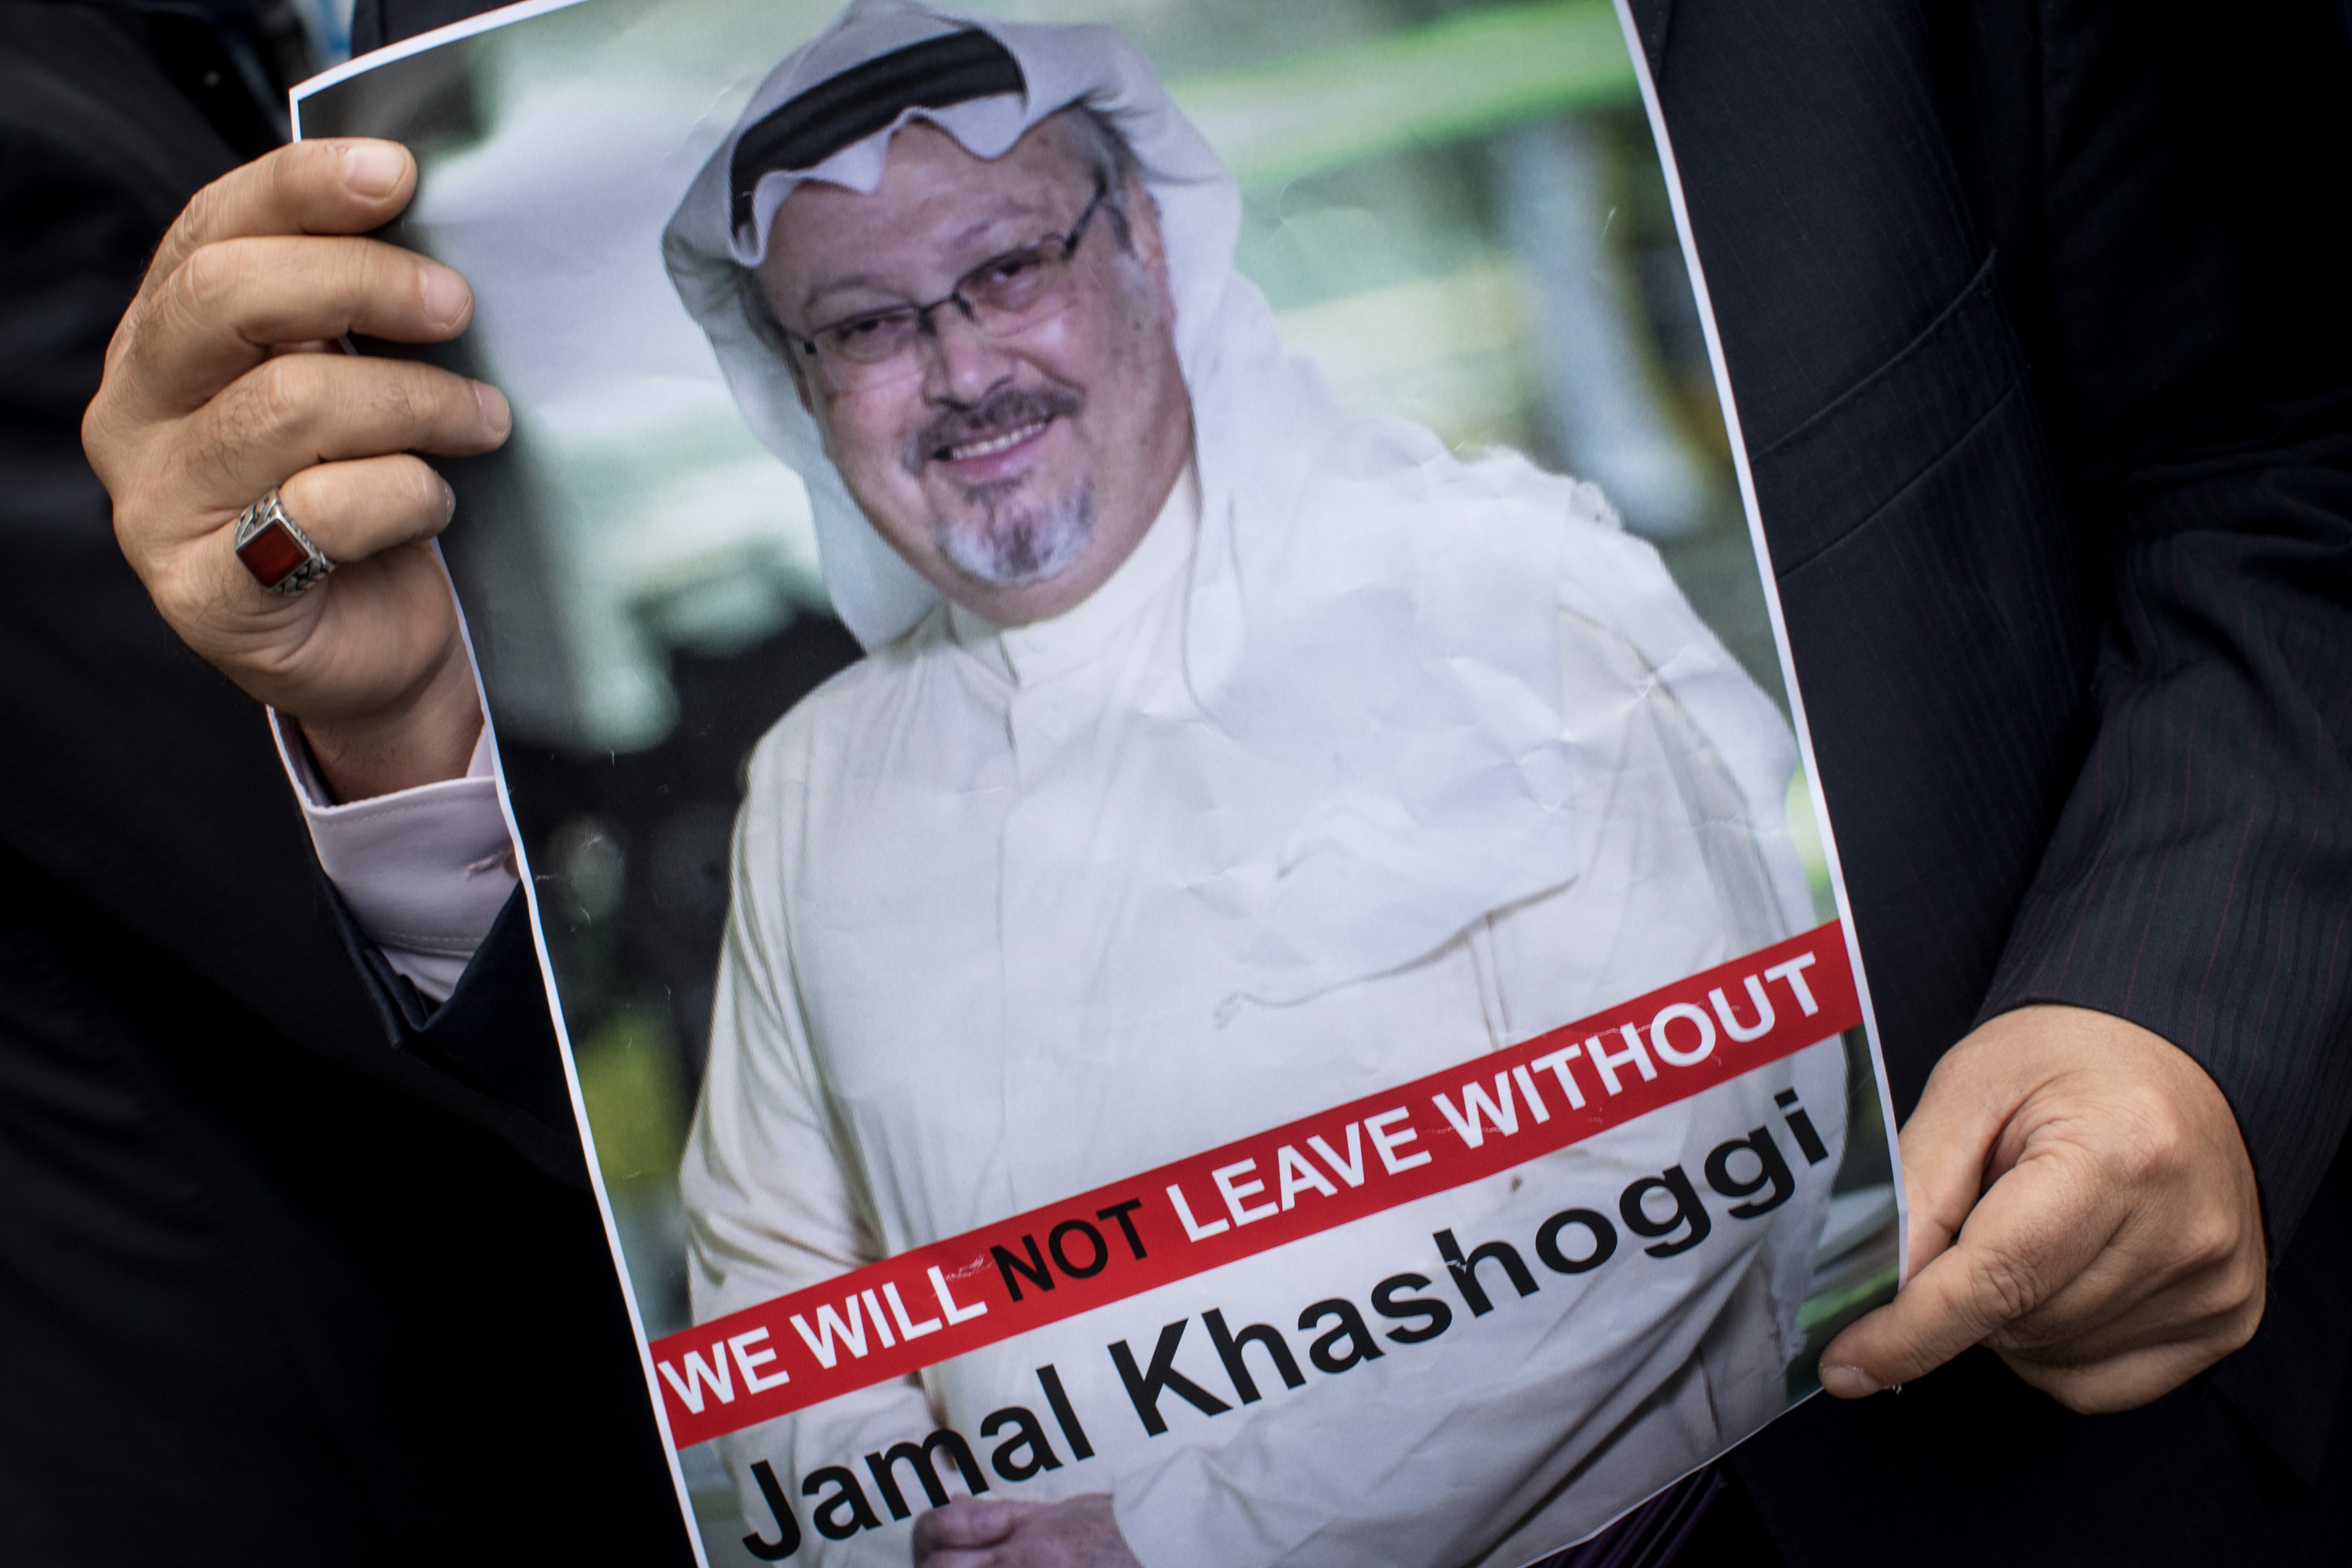 A man holds a poster of Saudi journalist Jamal Khashoggi during a protest organized by members of the Turkish-Arabic Media Association at the entrance to Saudi Arabia's consulate  in Istanbul, Turkey on Oct. 8, 2018.